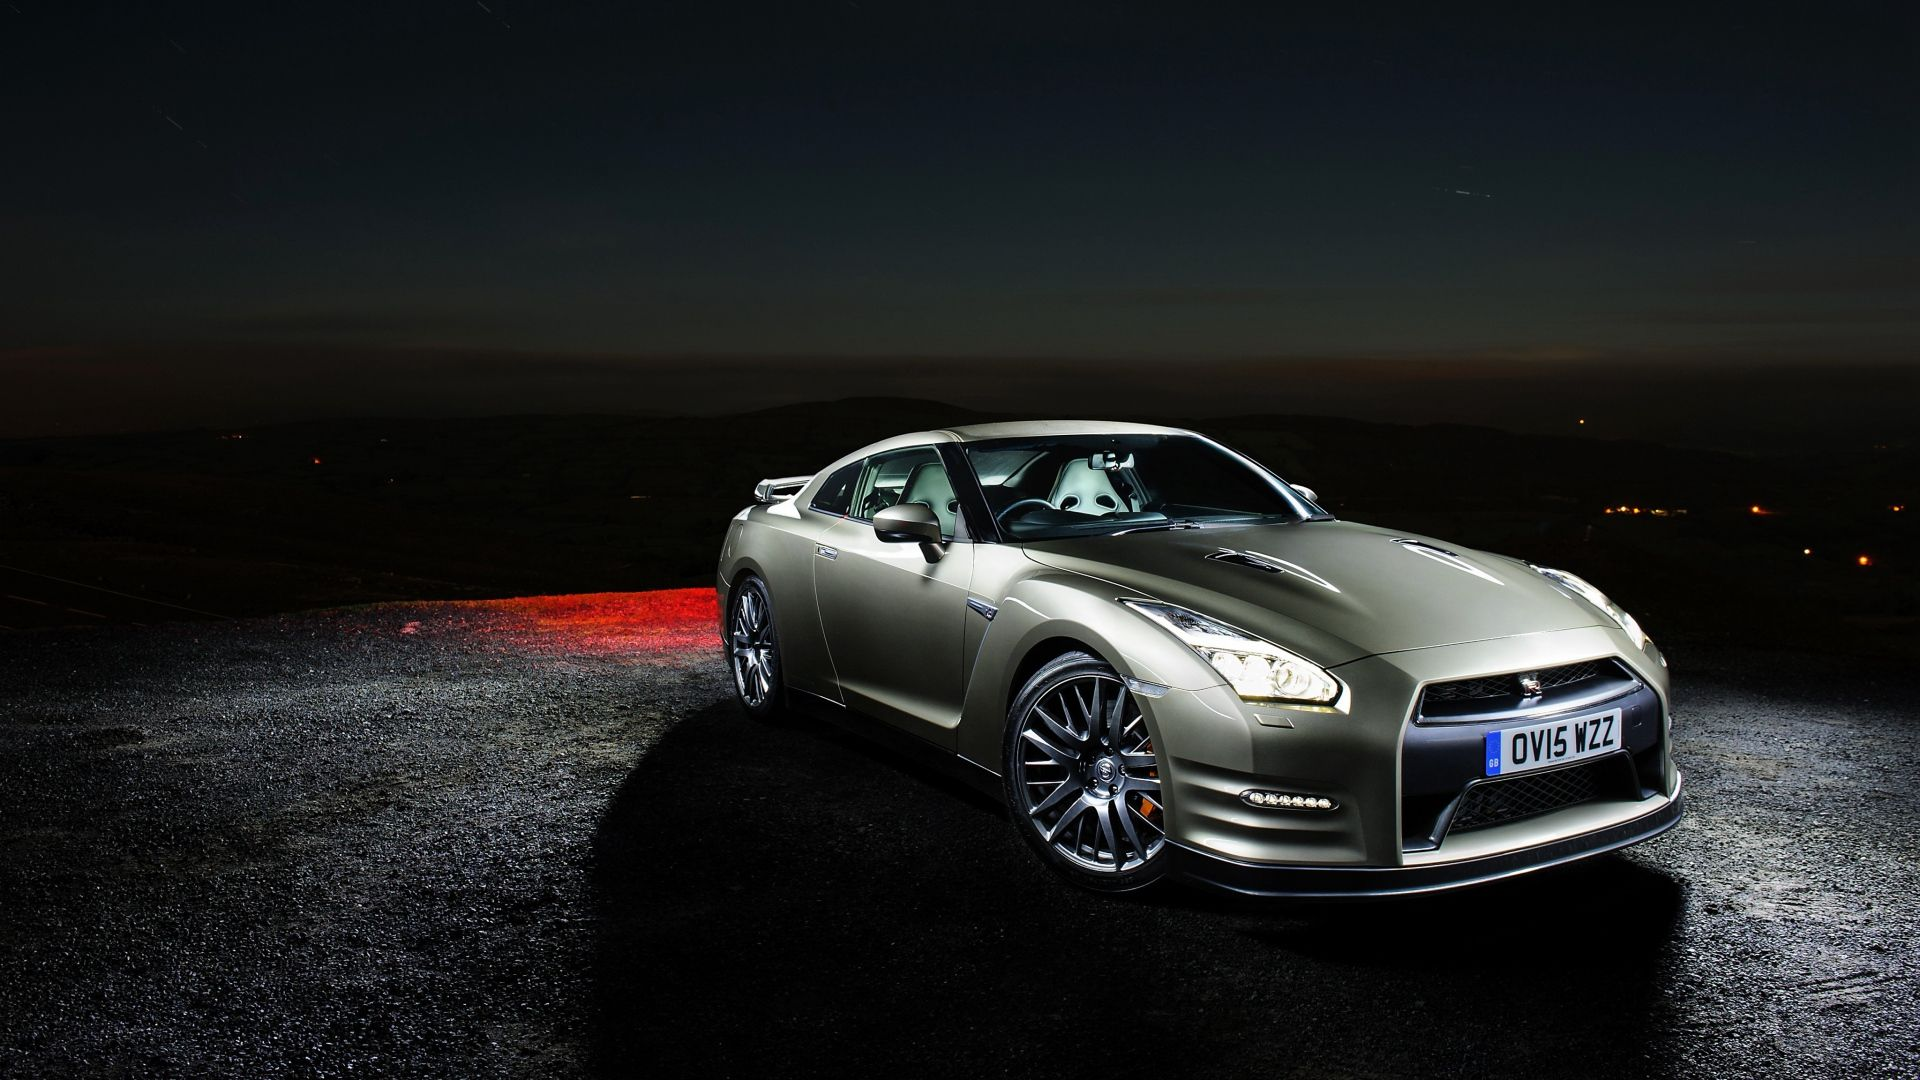 1920x1080 Wallpaper Nissan, Gt R, Side View, Night